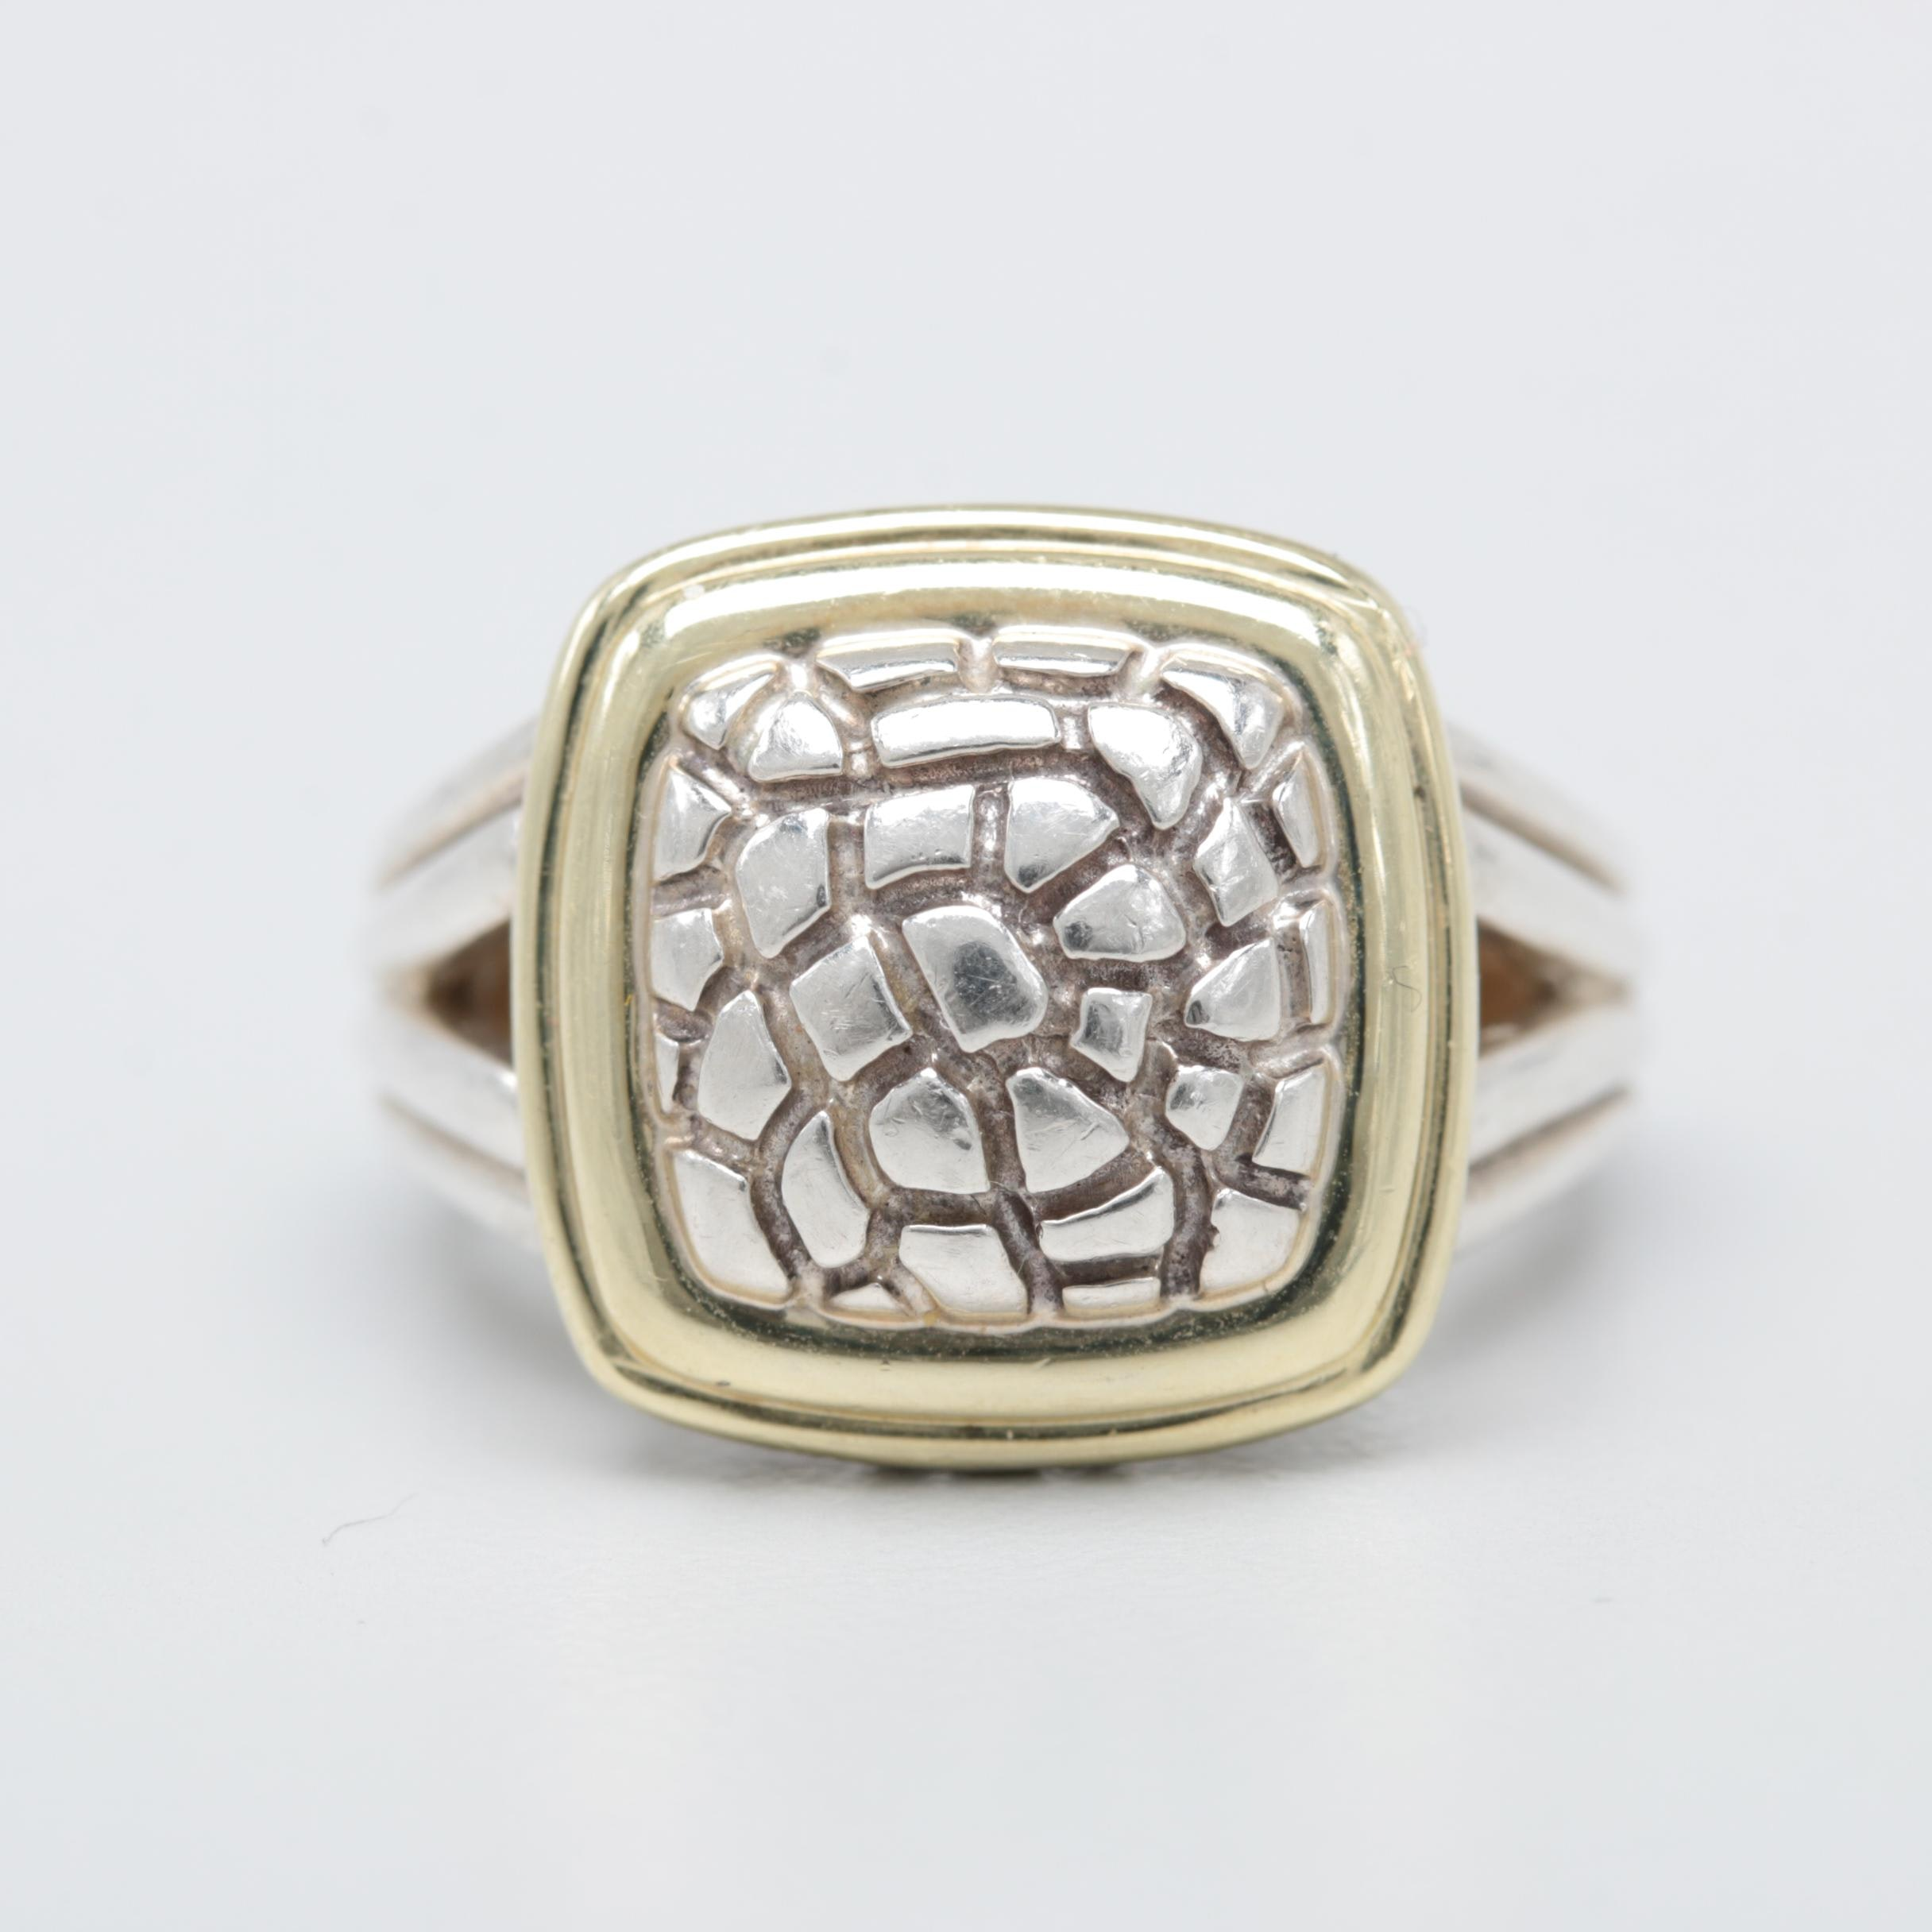 Charles Krypell Sterling Silver and 14K Yellow Gold Ring